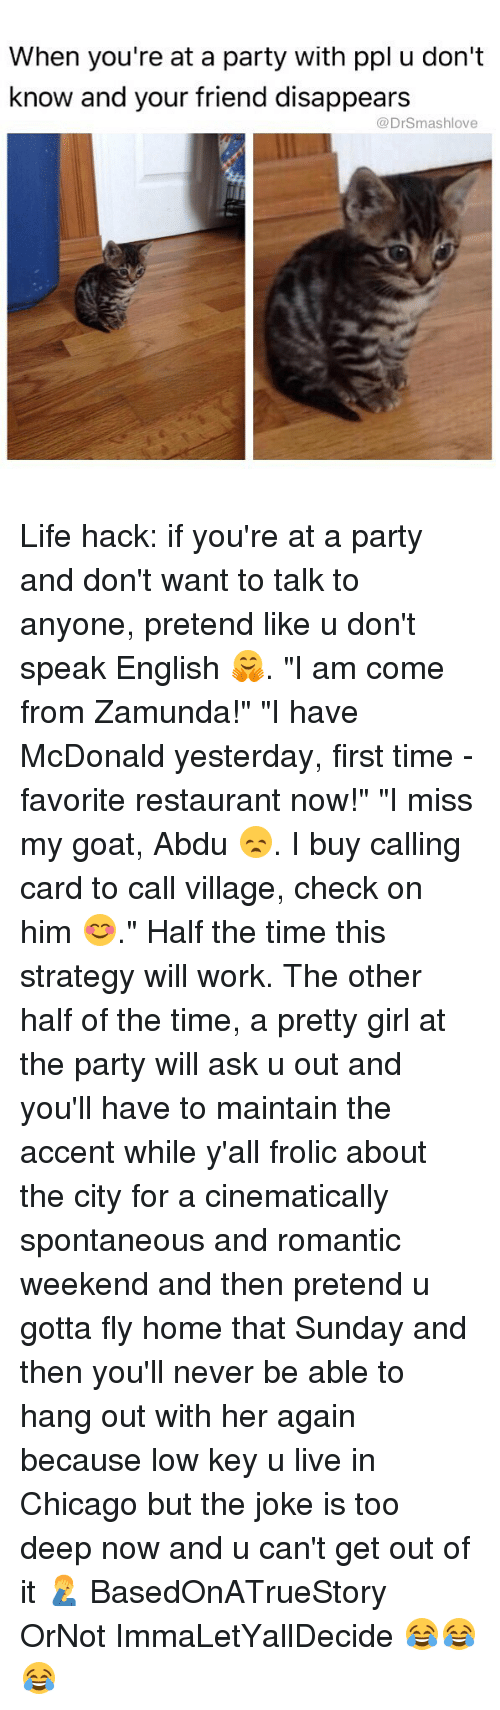 """zamunda: When you're at a party with ppl u don't  know and your friend disappears  @DrSmashlove Life hack: if you're at a party and don't want to talk to anyone, pretend like u don't speak English 🤗. """"I am come from Zamunda!"""" """"I have McDonald yesterday, first time - favorite restaurant now!"""" """"I miss my goat, Abdu 😞. I buy calling card to call village, check on him 😊."""" Half the time this strategy will work. The other half of the time, a pretty girl at the party will ask u out and you'll have to maintain the accent while y'all frolic about the city for a cinematically spontaneous and romantic weekend and then pretend u gotta fly home that Sunday and then you'll never be able to hang out with her again because low key u live in Chicago but the joke is too deep now and u can't get out of it 🤦♂️ BasedOnATrueStory OrNot ImmaLetYallDecide 😂😂😂"""